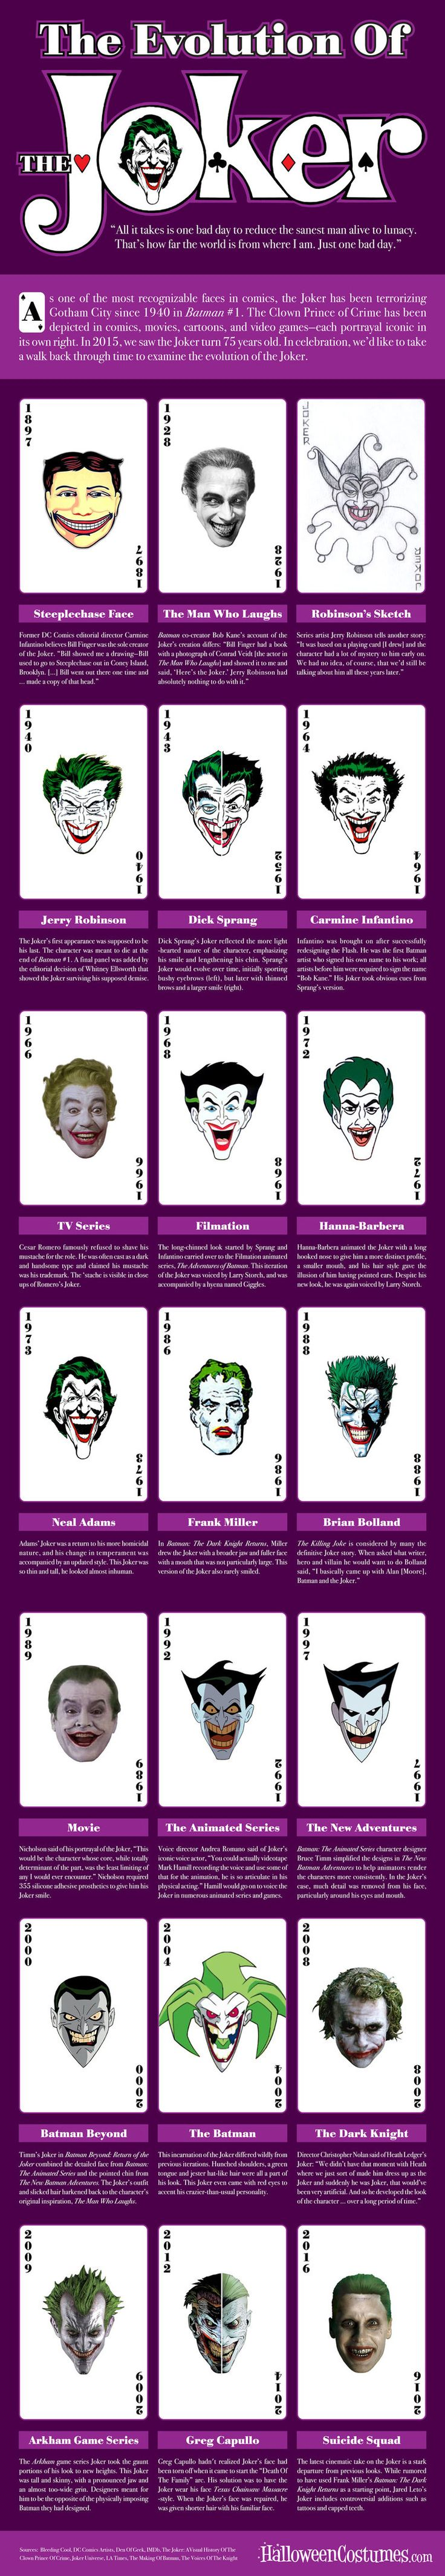 infographic-the-evolution-of-the-joker-in-comics-television-and-film-social.jpg